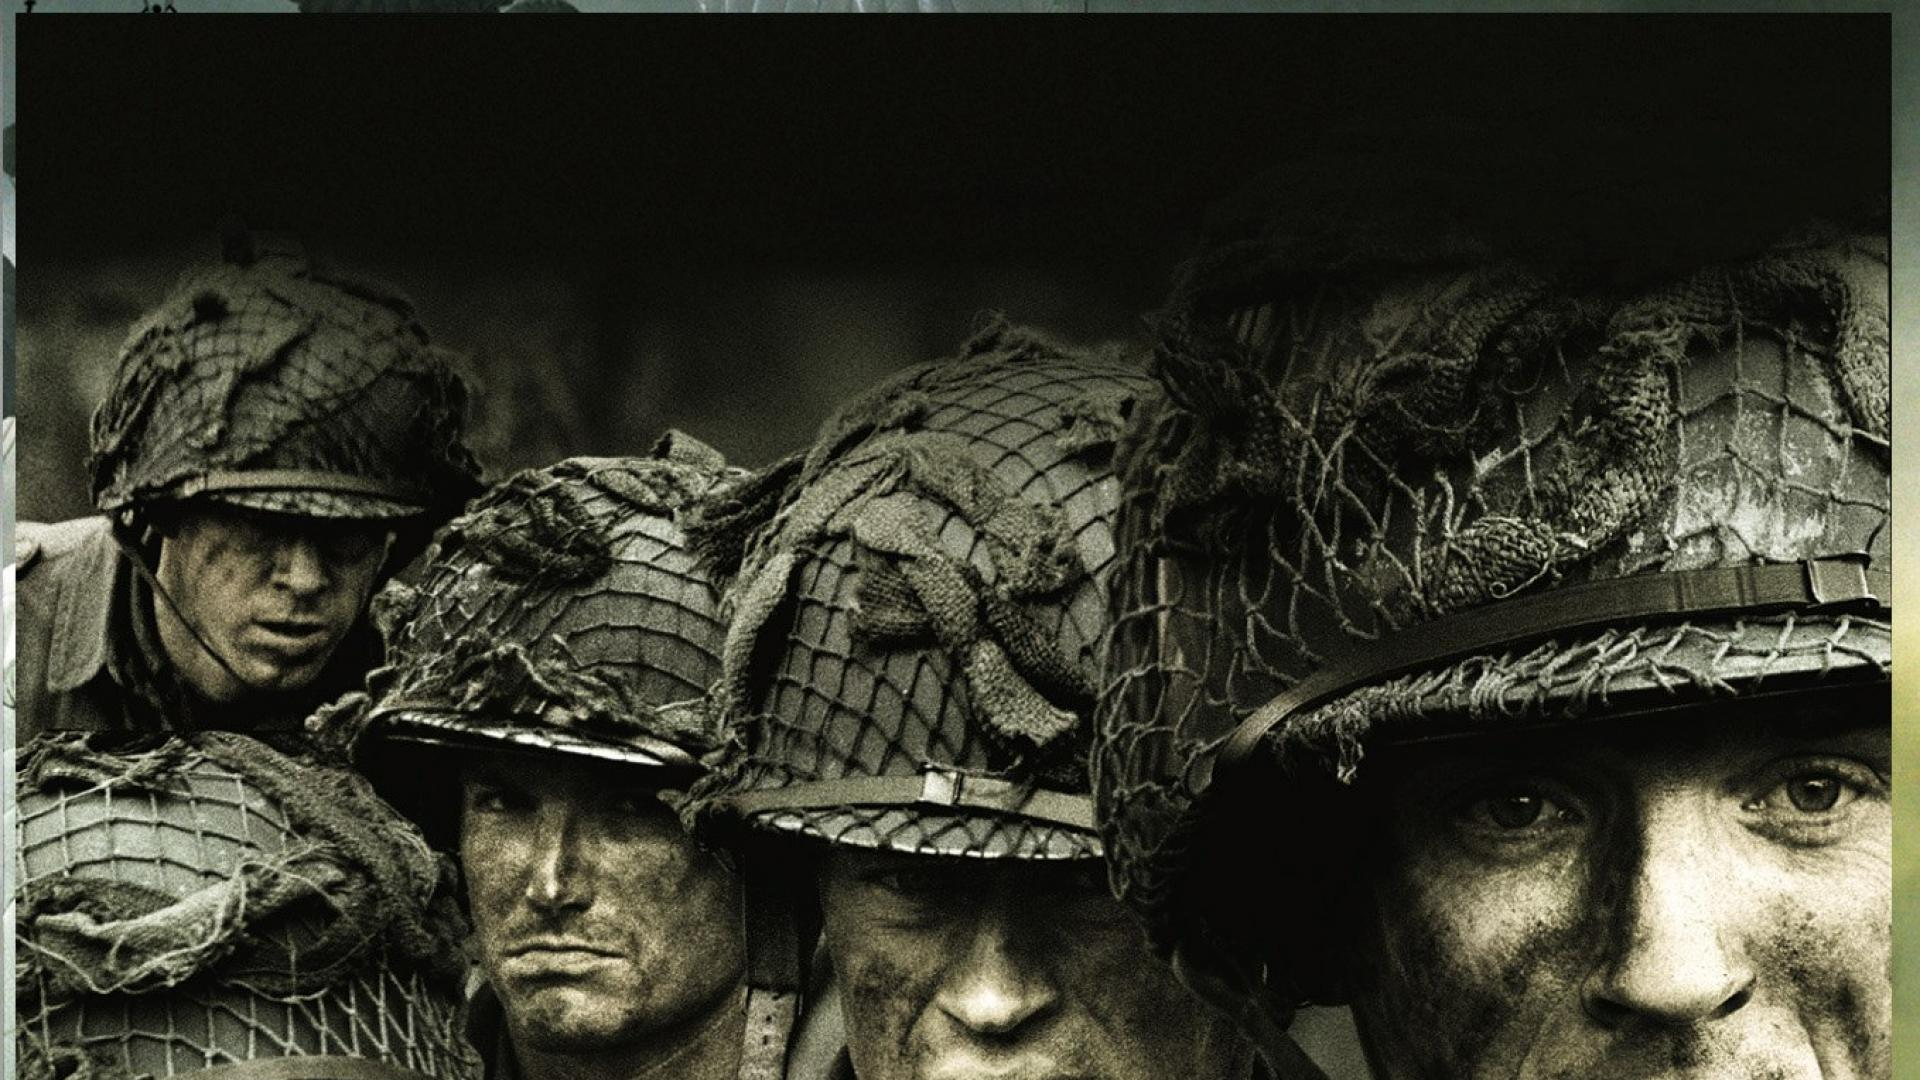 band of brothers wallpaper HD – wallpapermonkey com